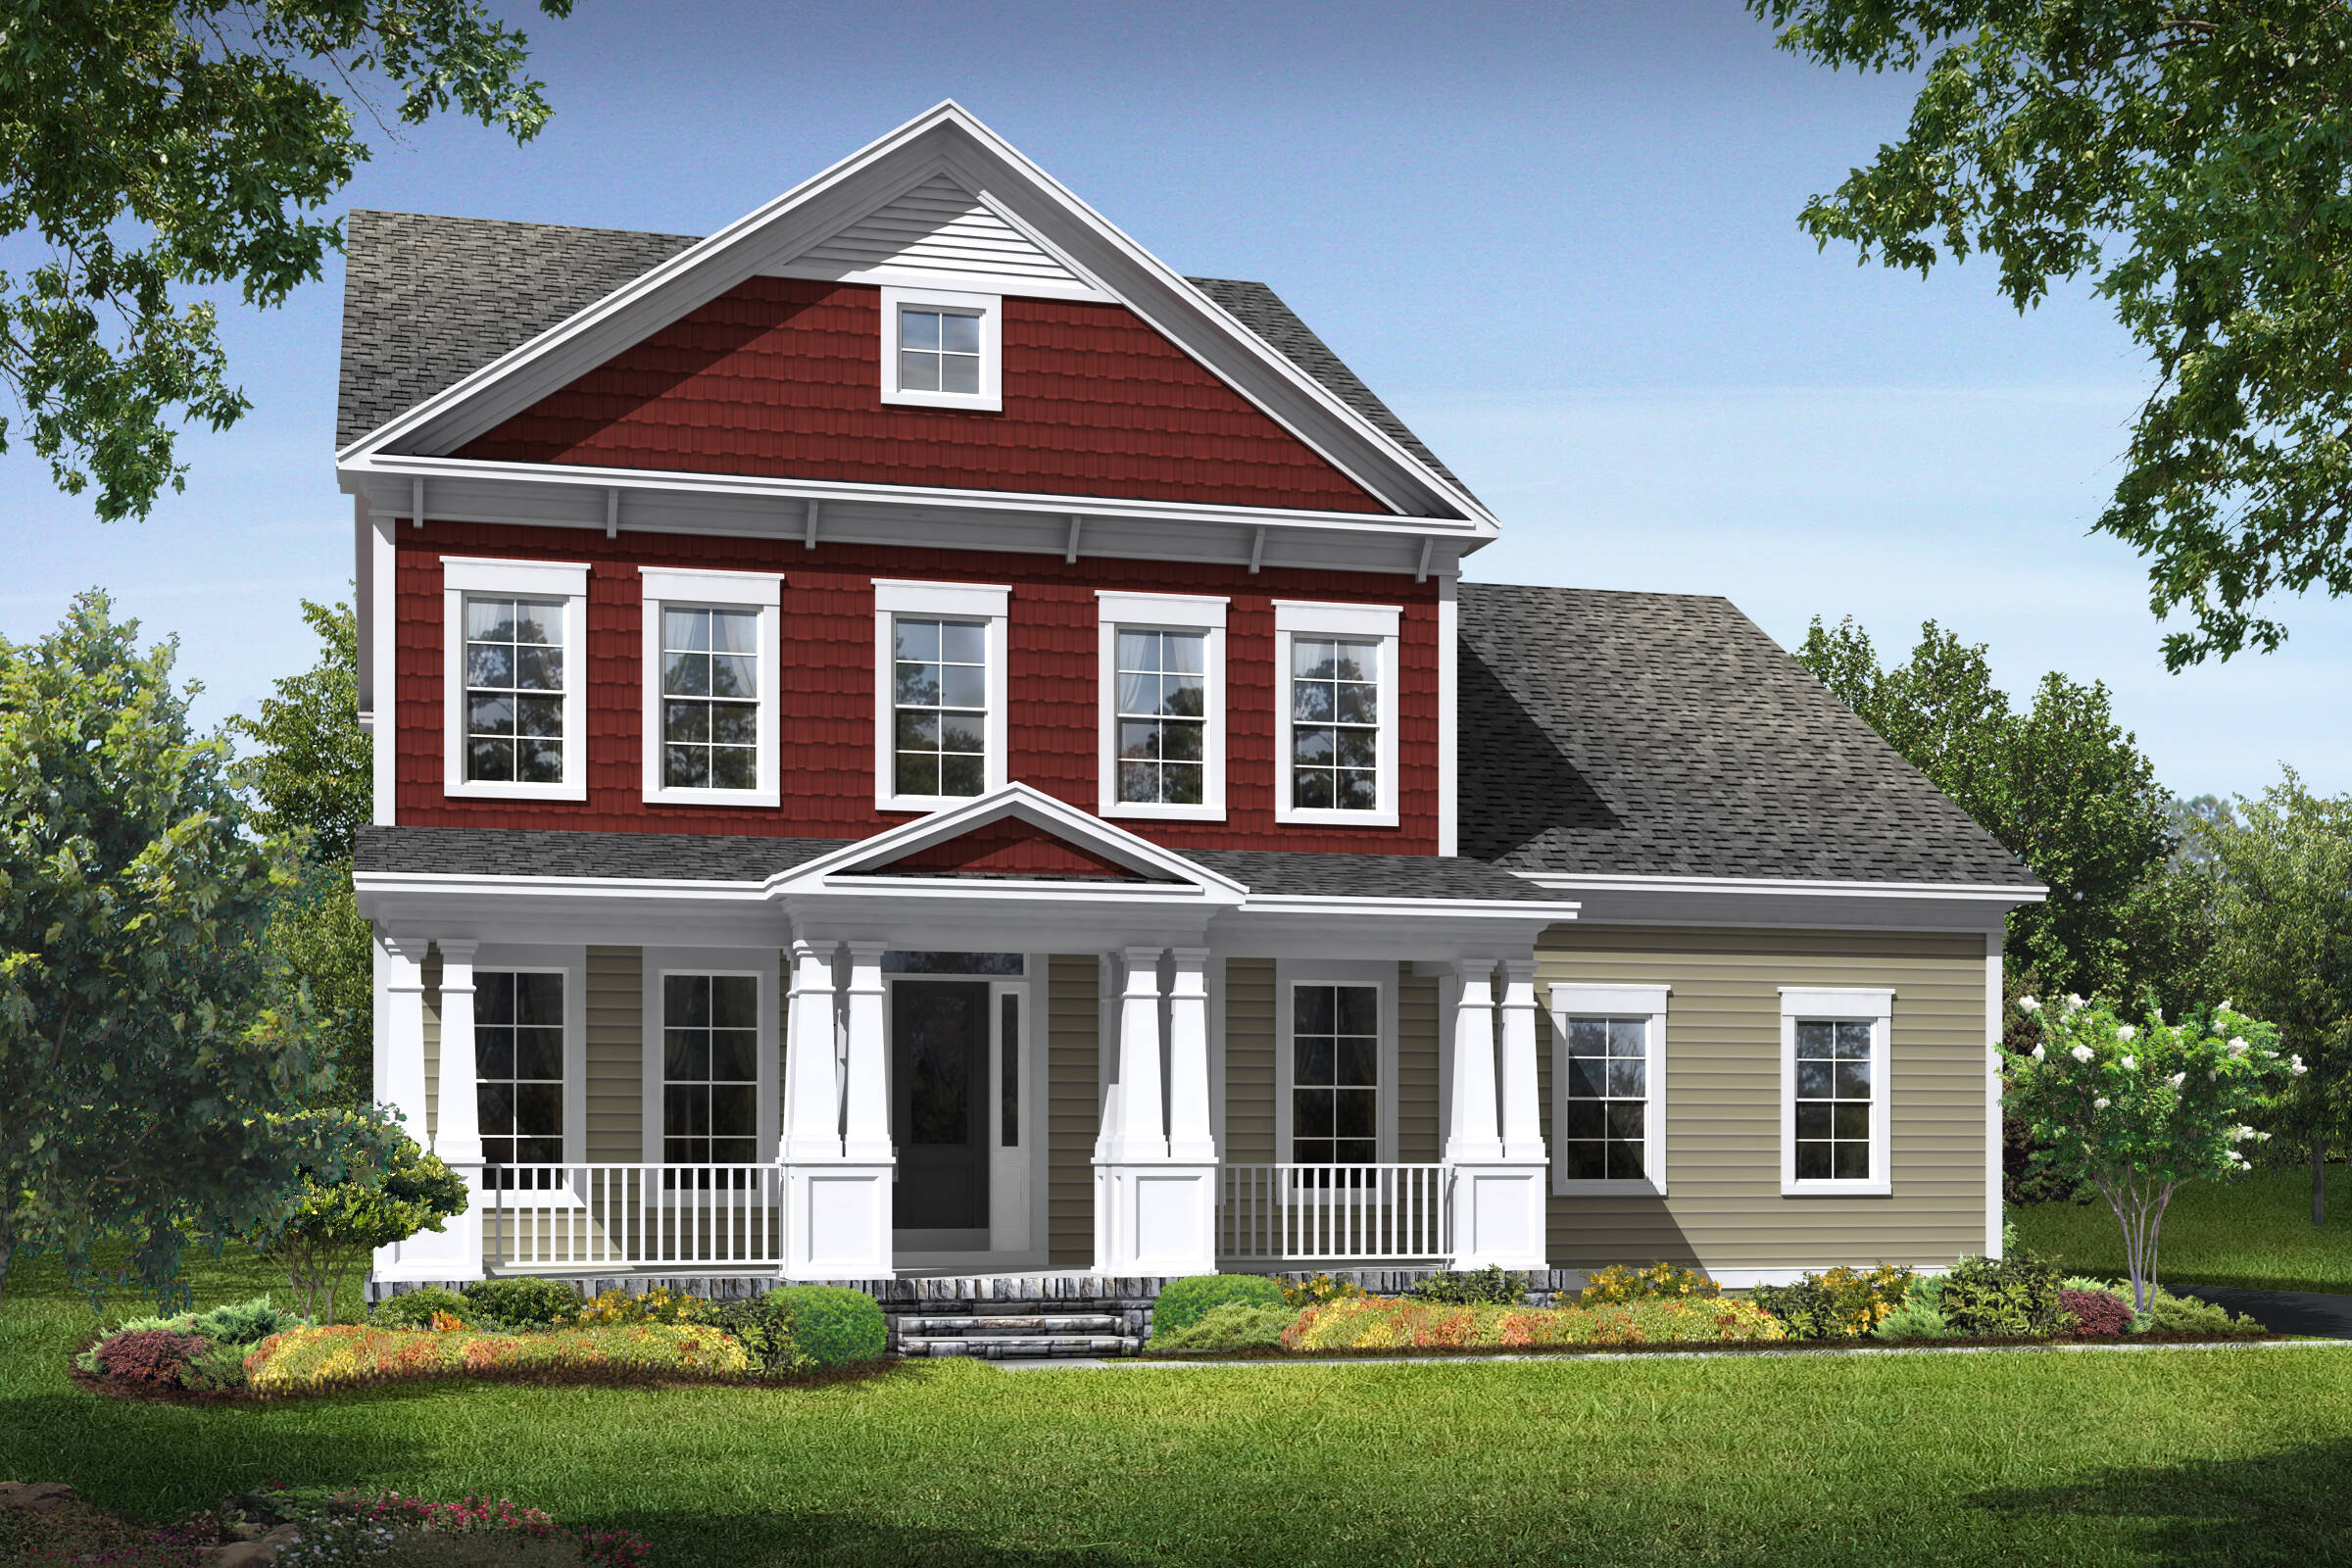 oxfordshire-ii-f-new-homes-at-willowsford-greens